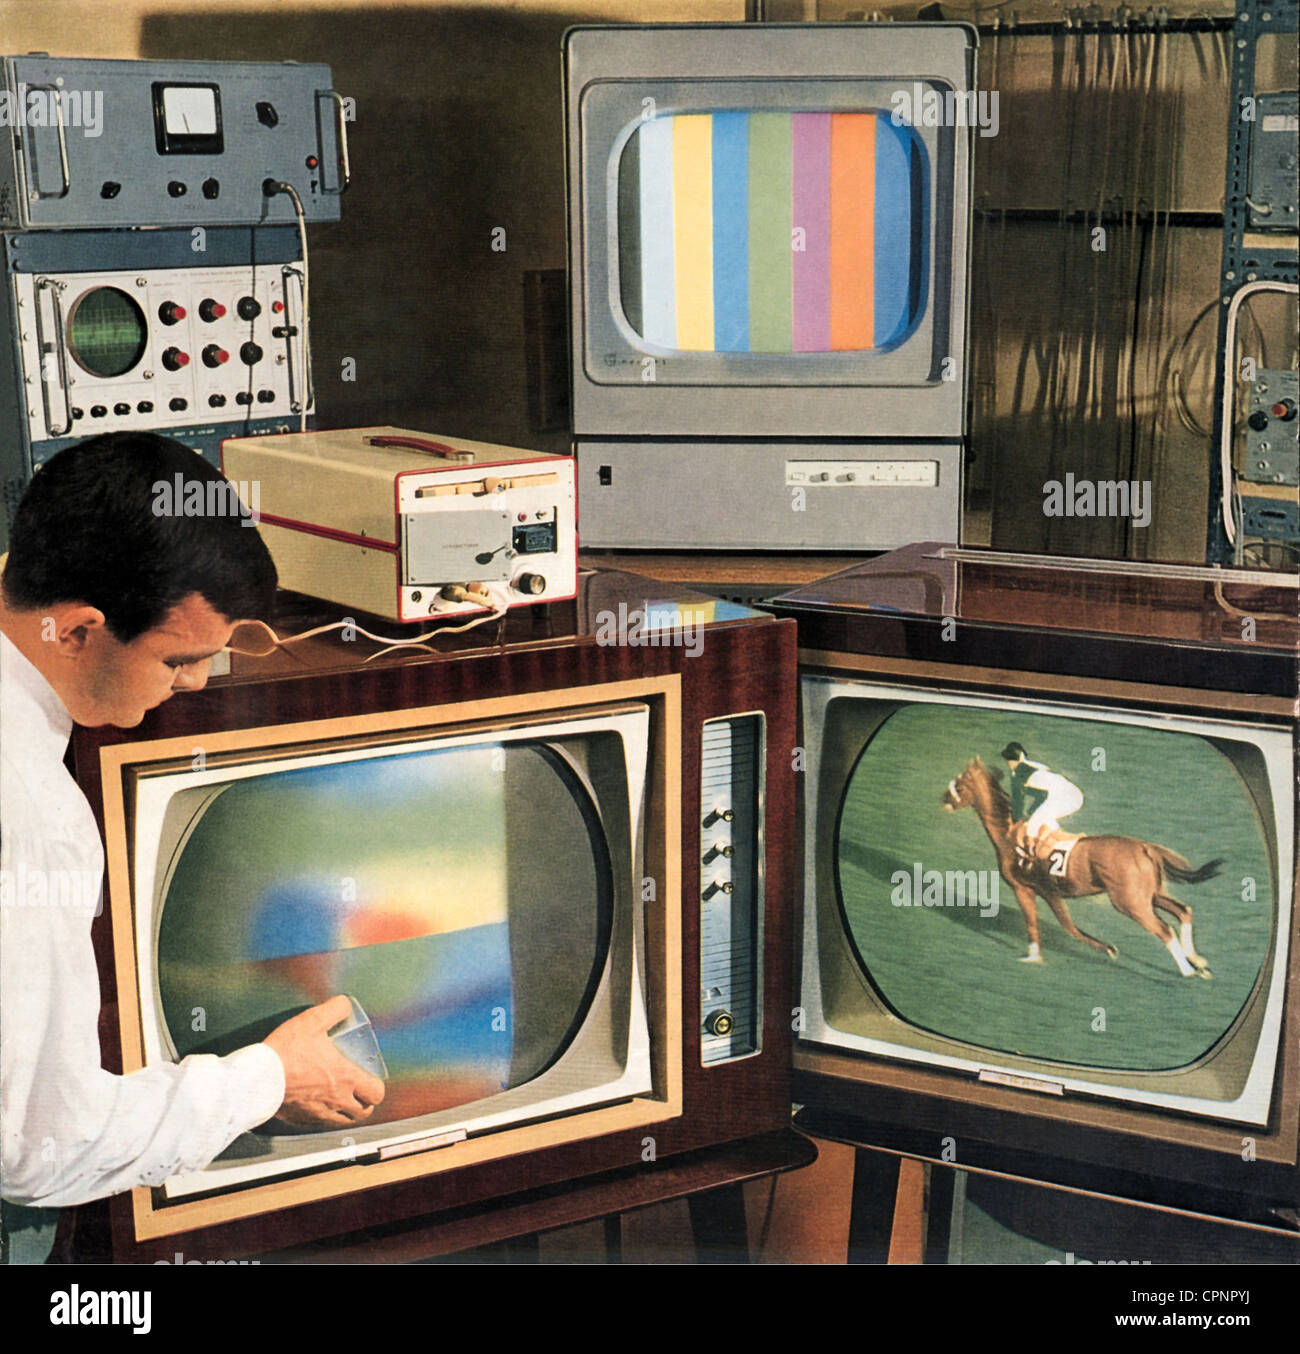 https www alamyimages fr photo image broadcast television brochure promotionnelle systeme tv couleur secam france vers 1965 droits additionnels clearences non disponible 48422182 html